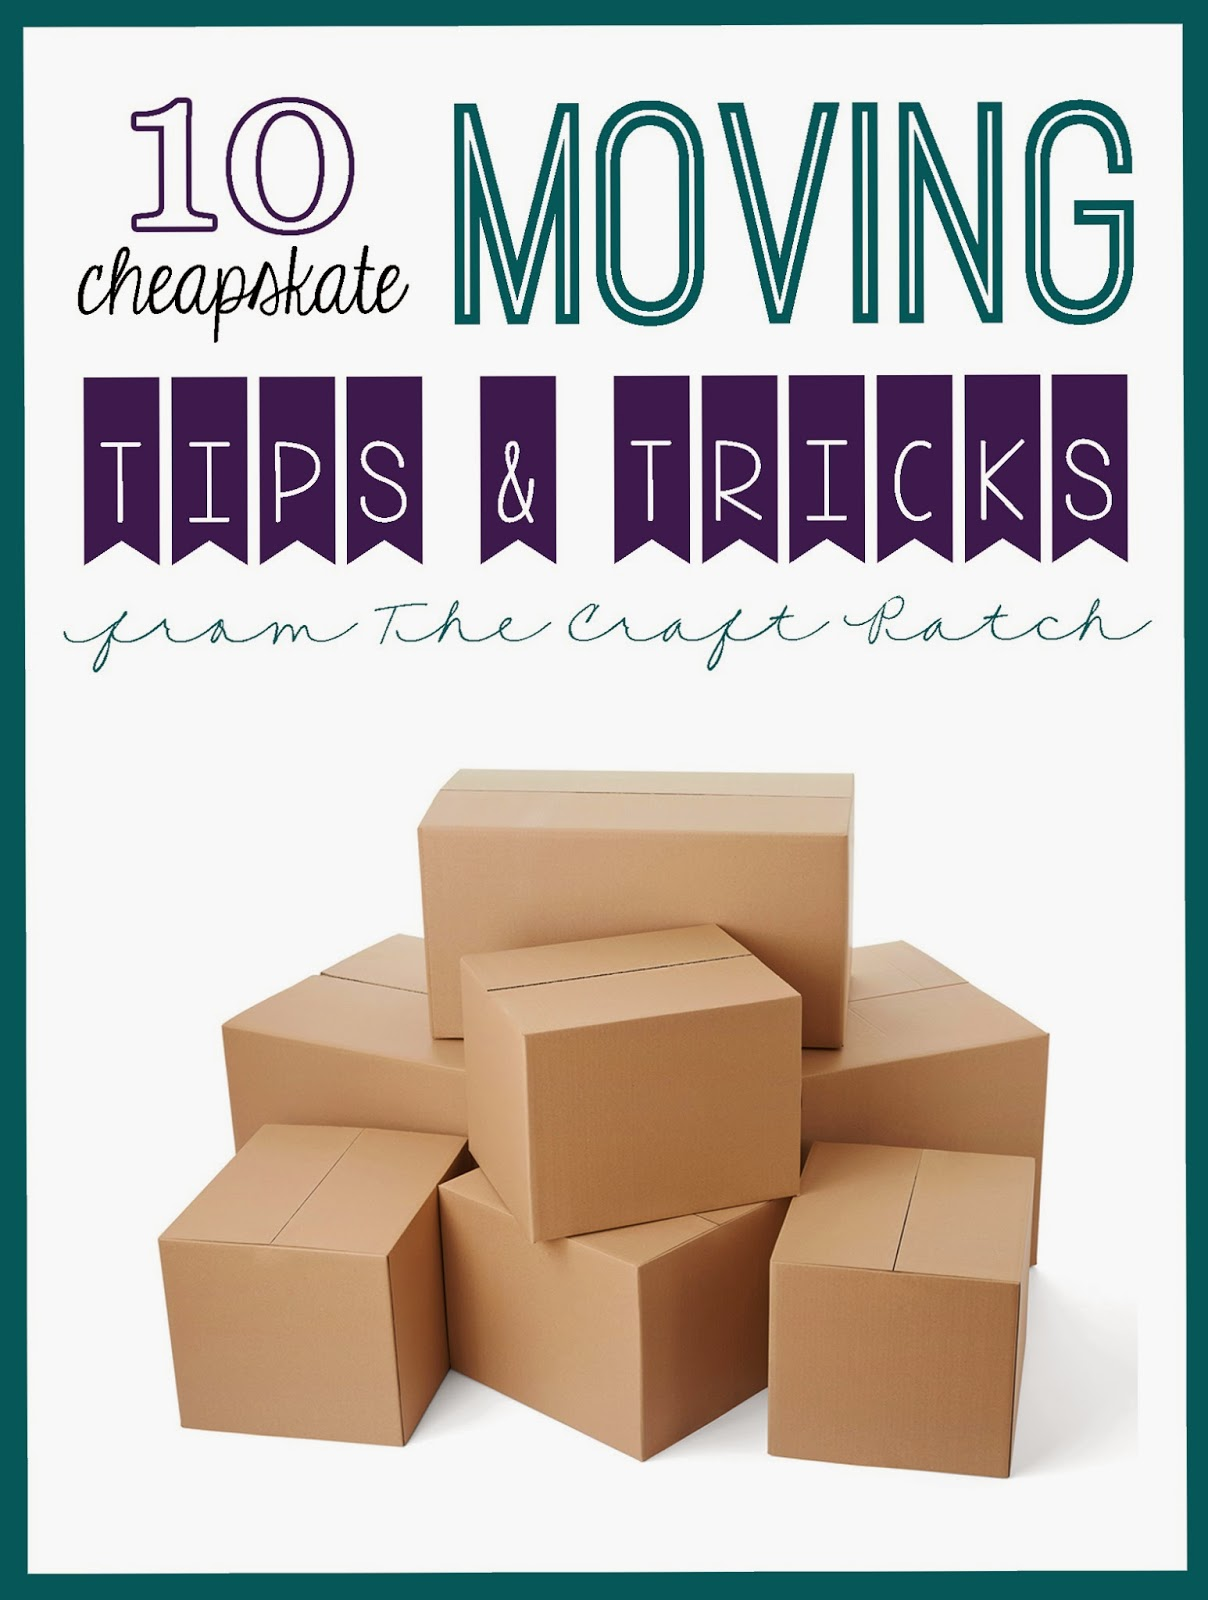 10 budget friendly moving tips tricks fun cheap or free 10 budget friendly moving tips tricks fandeluxe Gallery